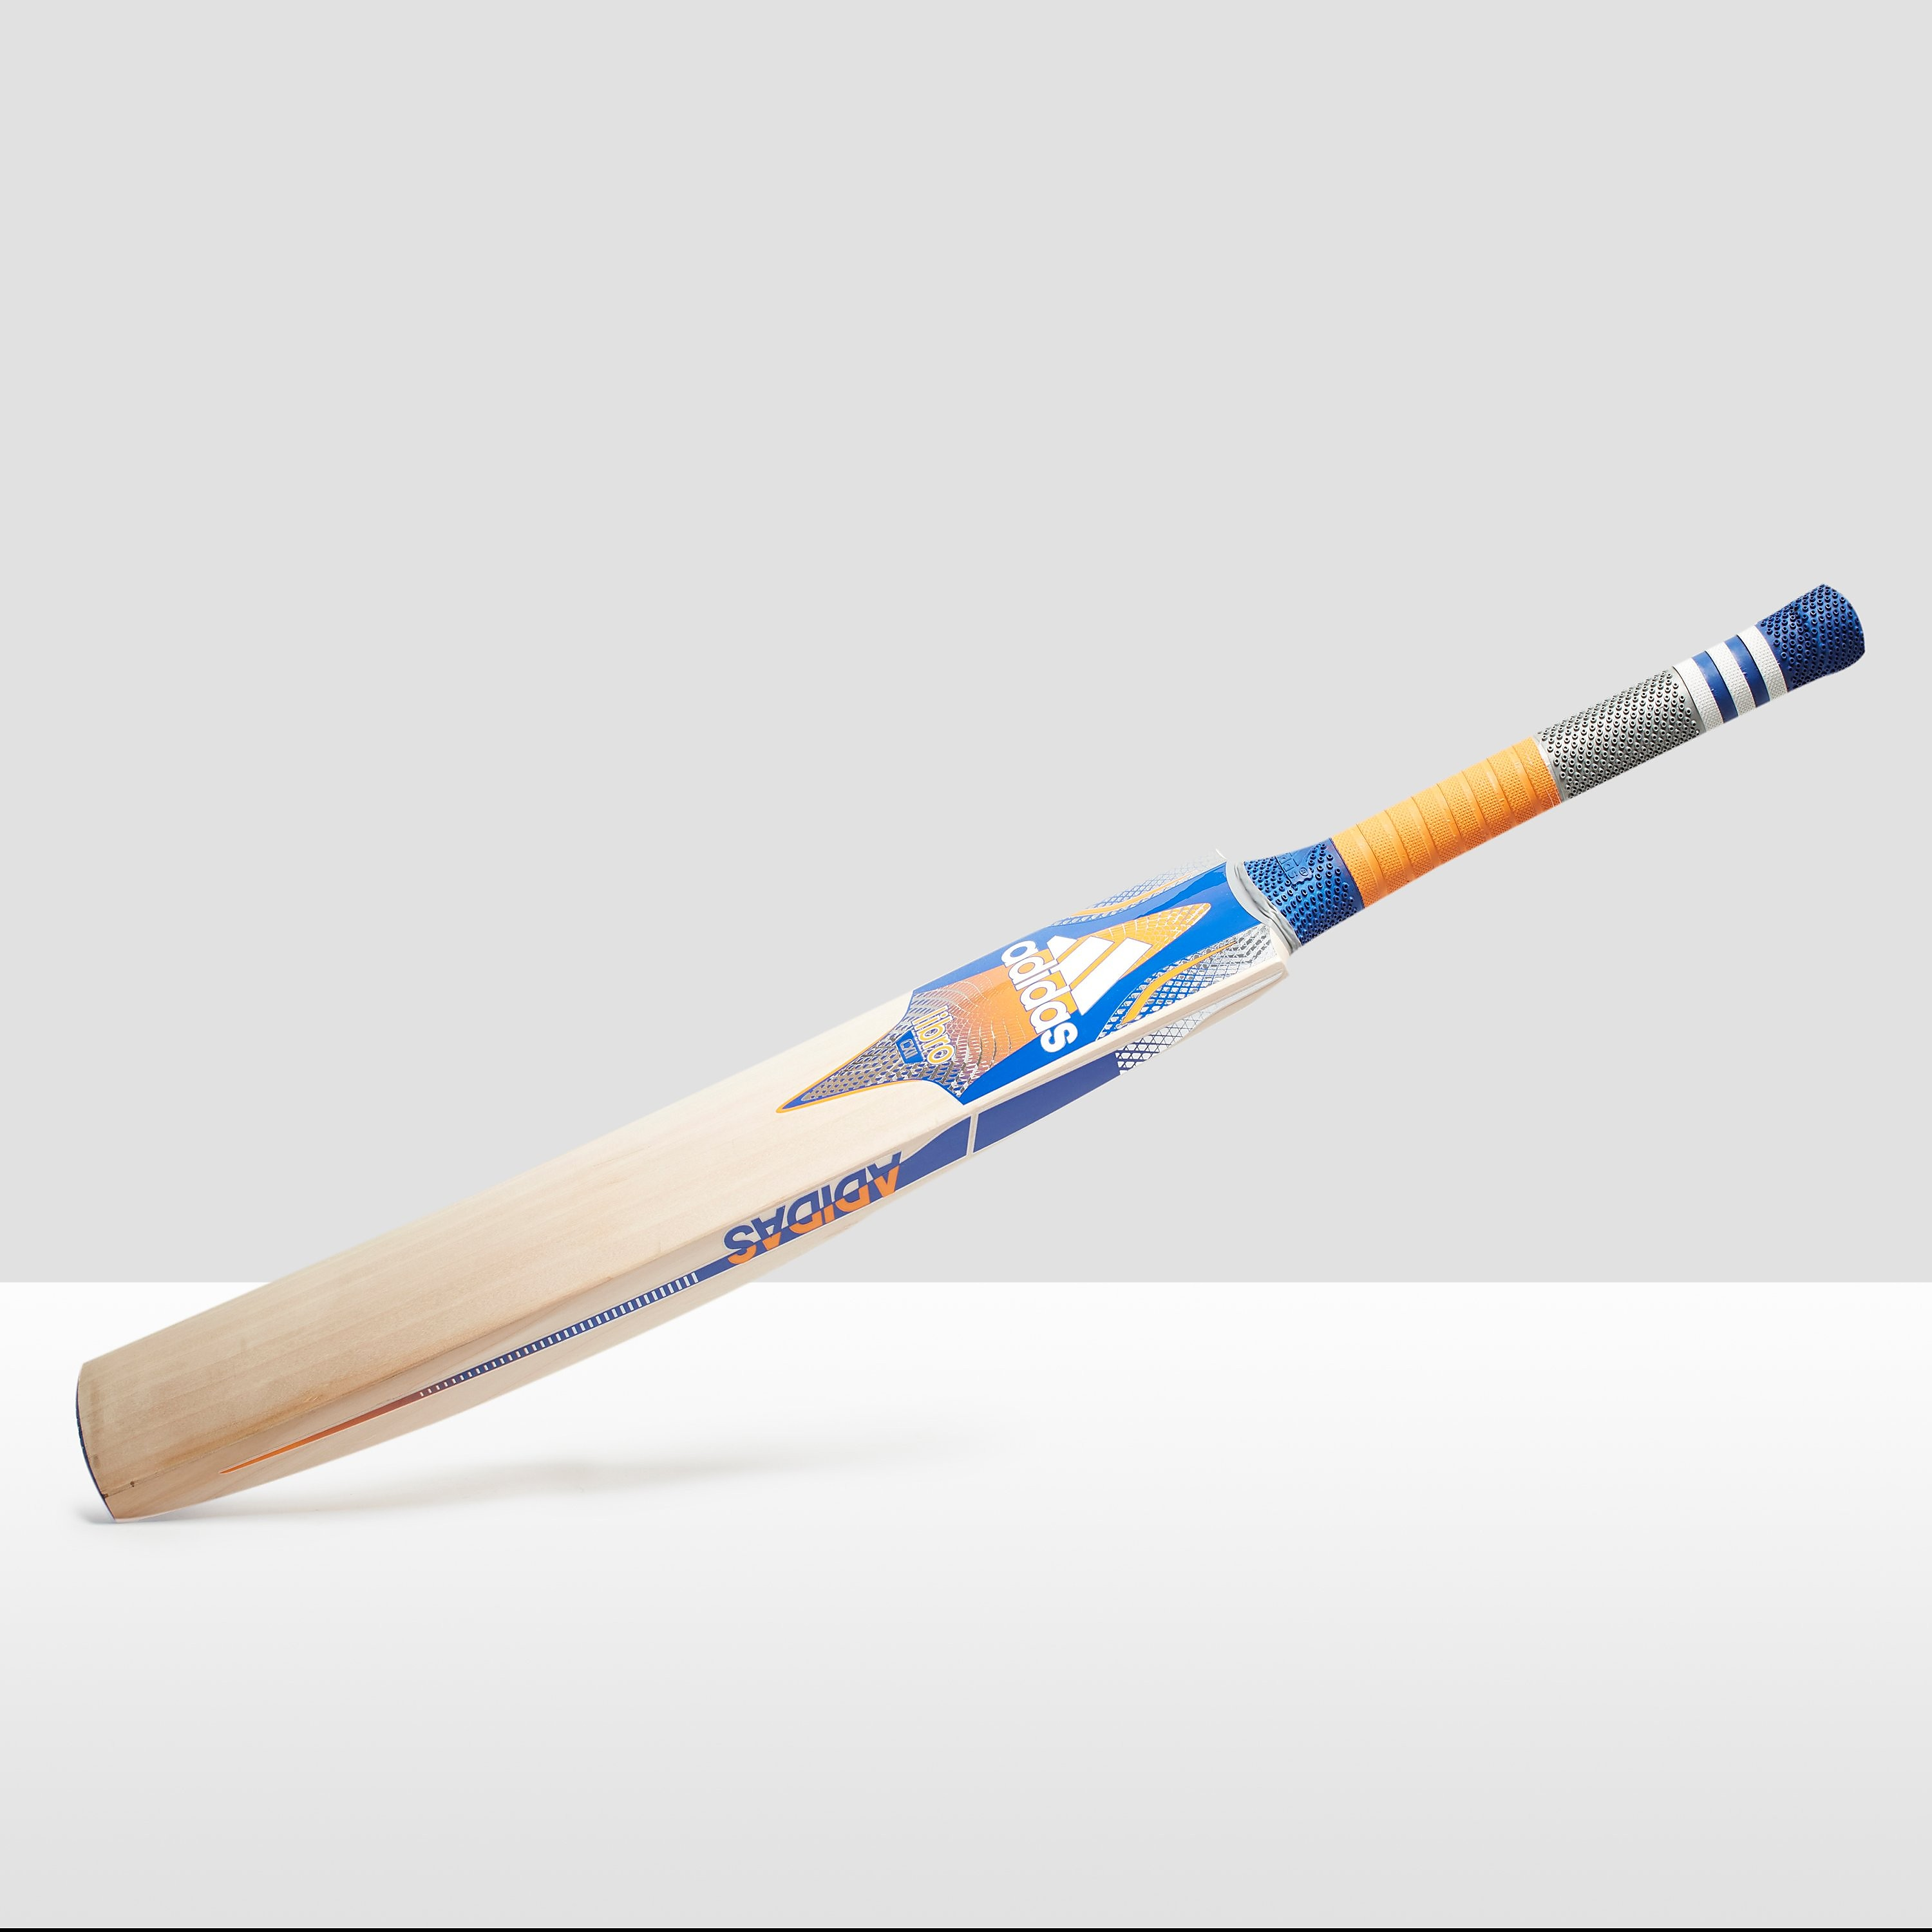 adidas Libro CX11 Cricket Bat